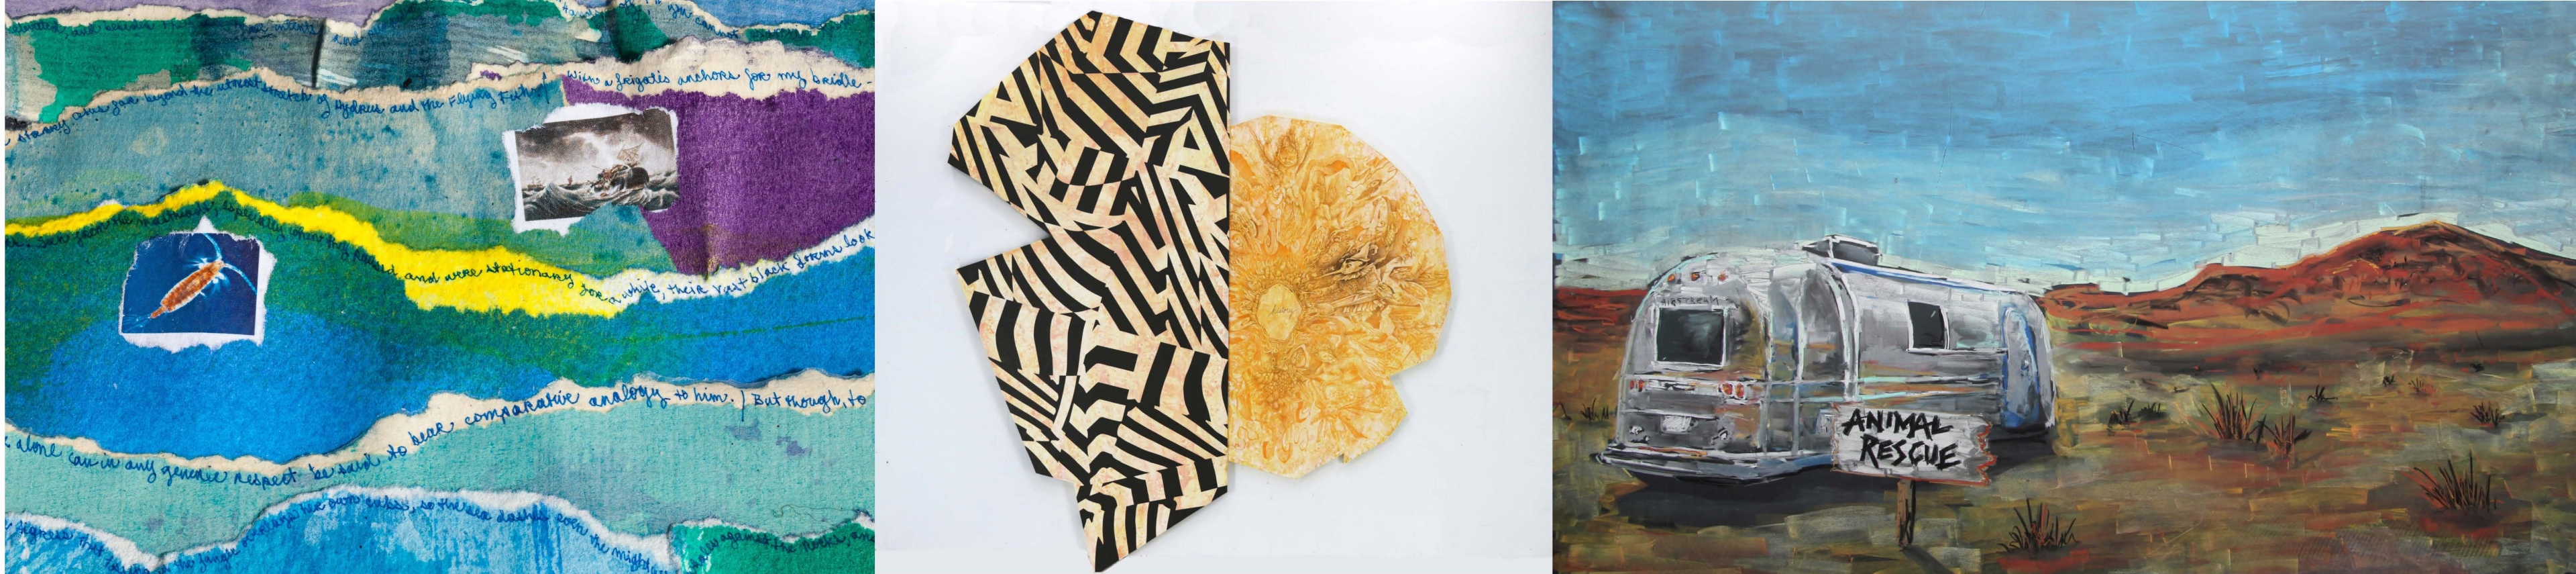 """3 paintings. First is cool blue with aquatic images. Second is black and white polygonal contrasted with what appears to be dried fruit. The third is a barren landscape with a trailer in the foreground accomponied by a sign reading """"animal rescue"""""""